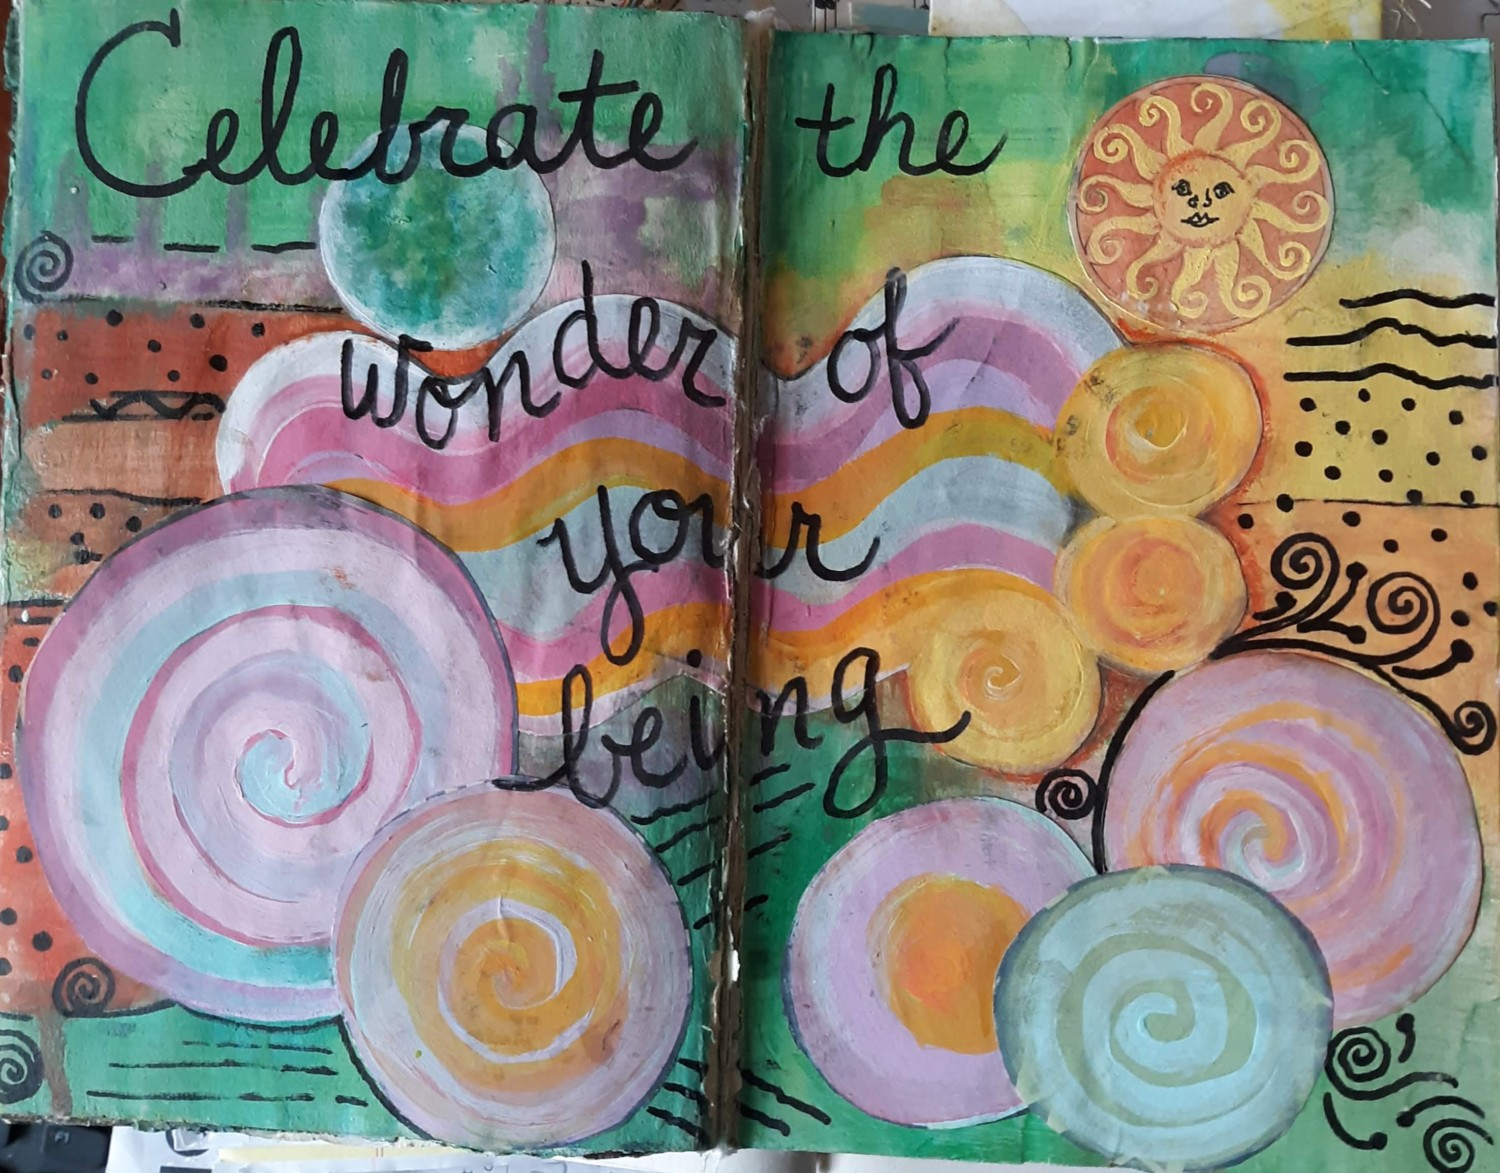 creative journal - celebrate the wonder of your being